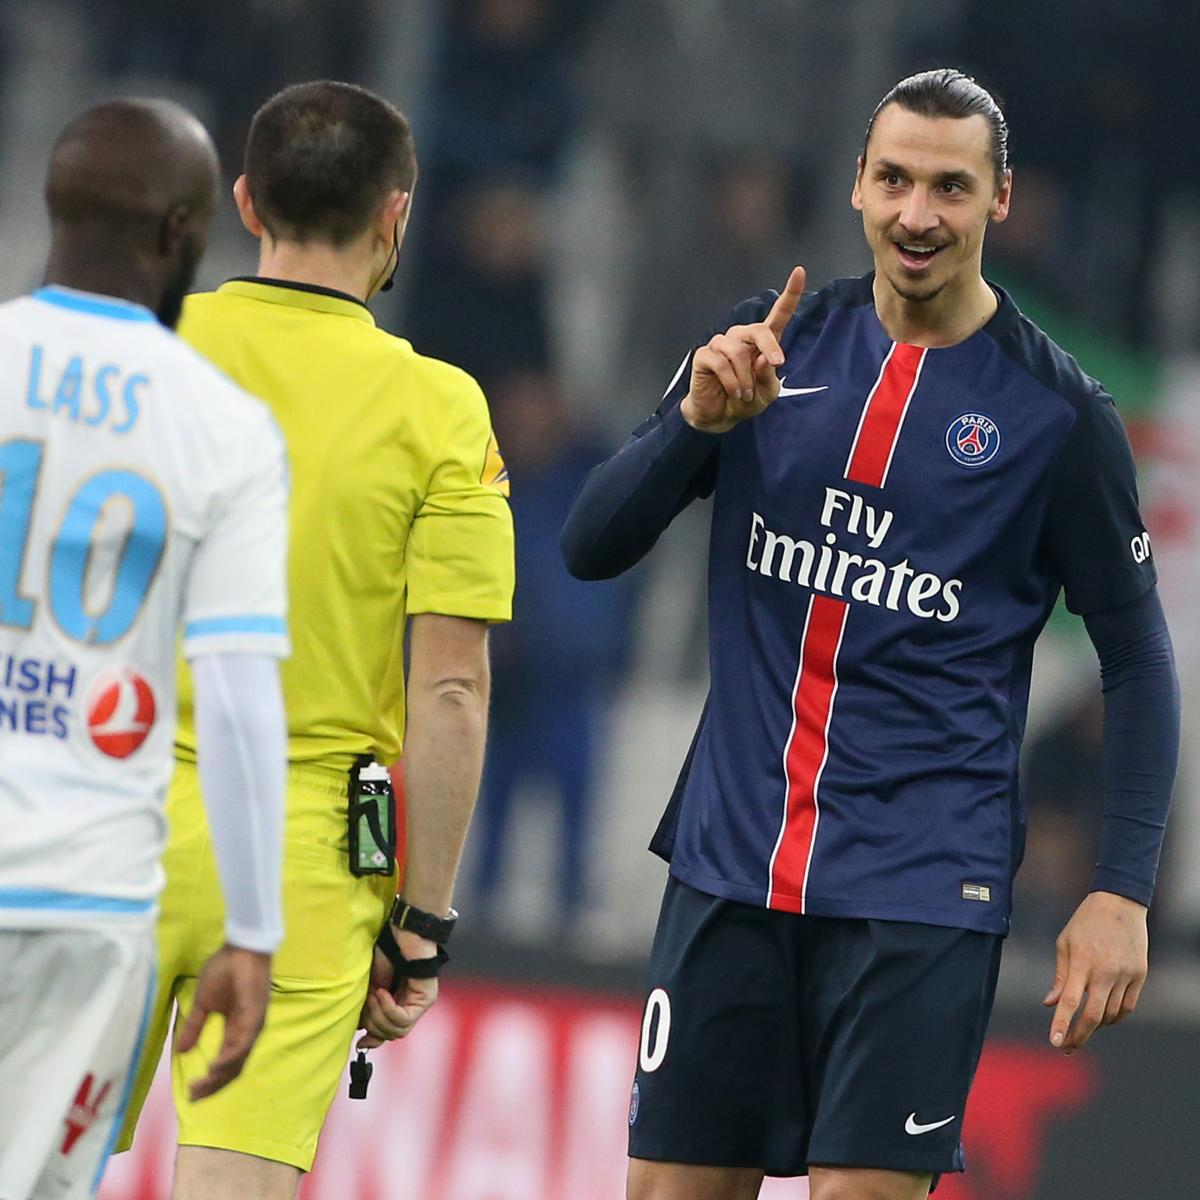 marseille vs psg team news preview live stream tv info bleacher report latest news. Black Bedroom Furniture Sets. Home Design Ideas